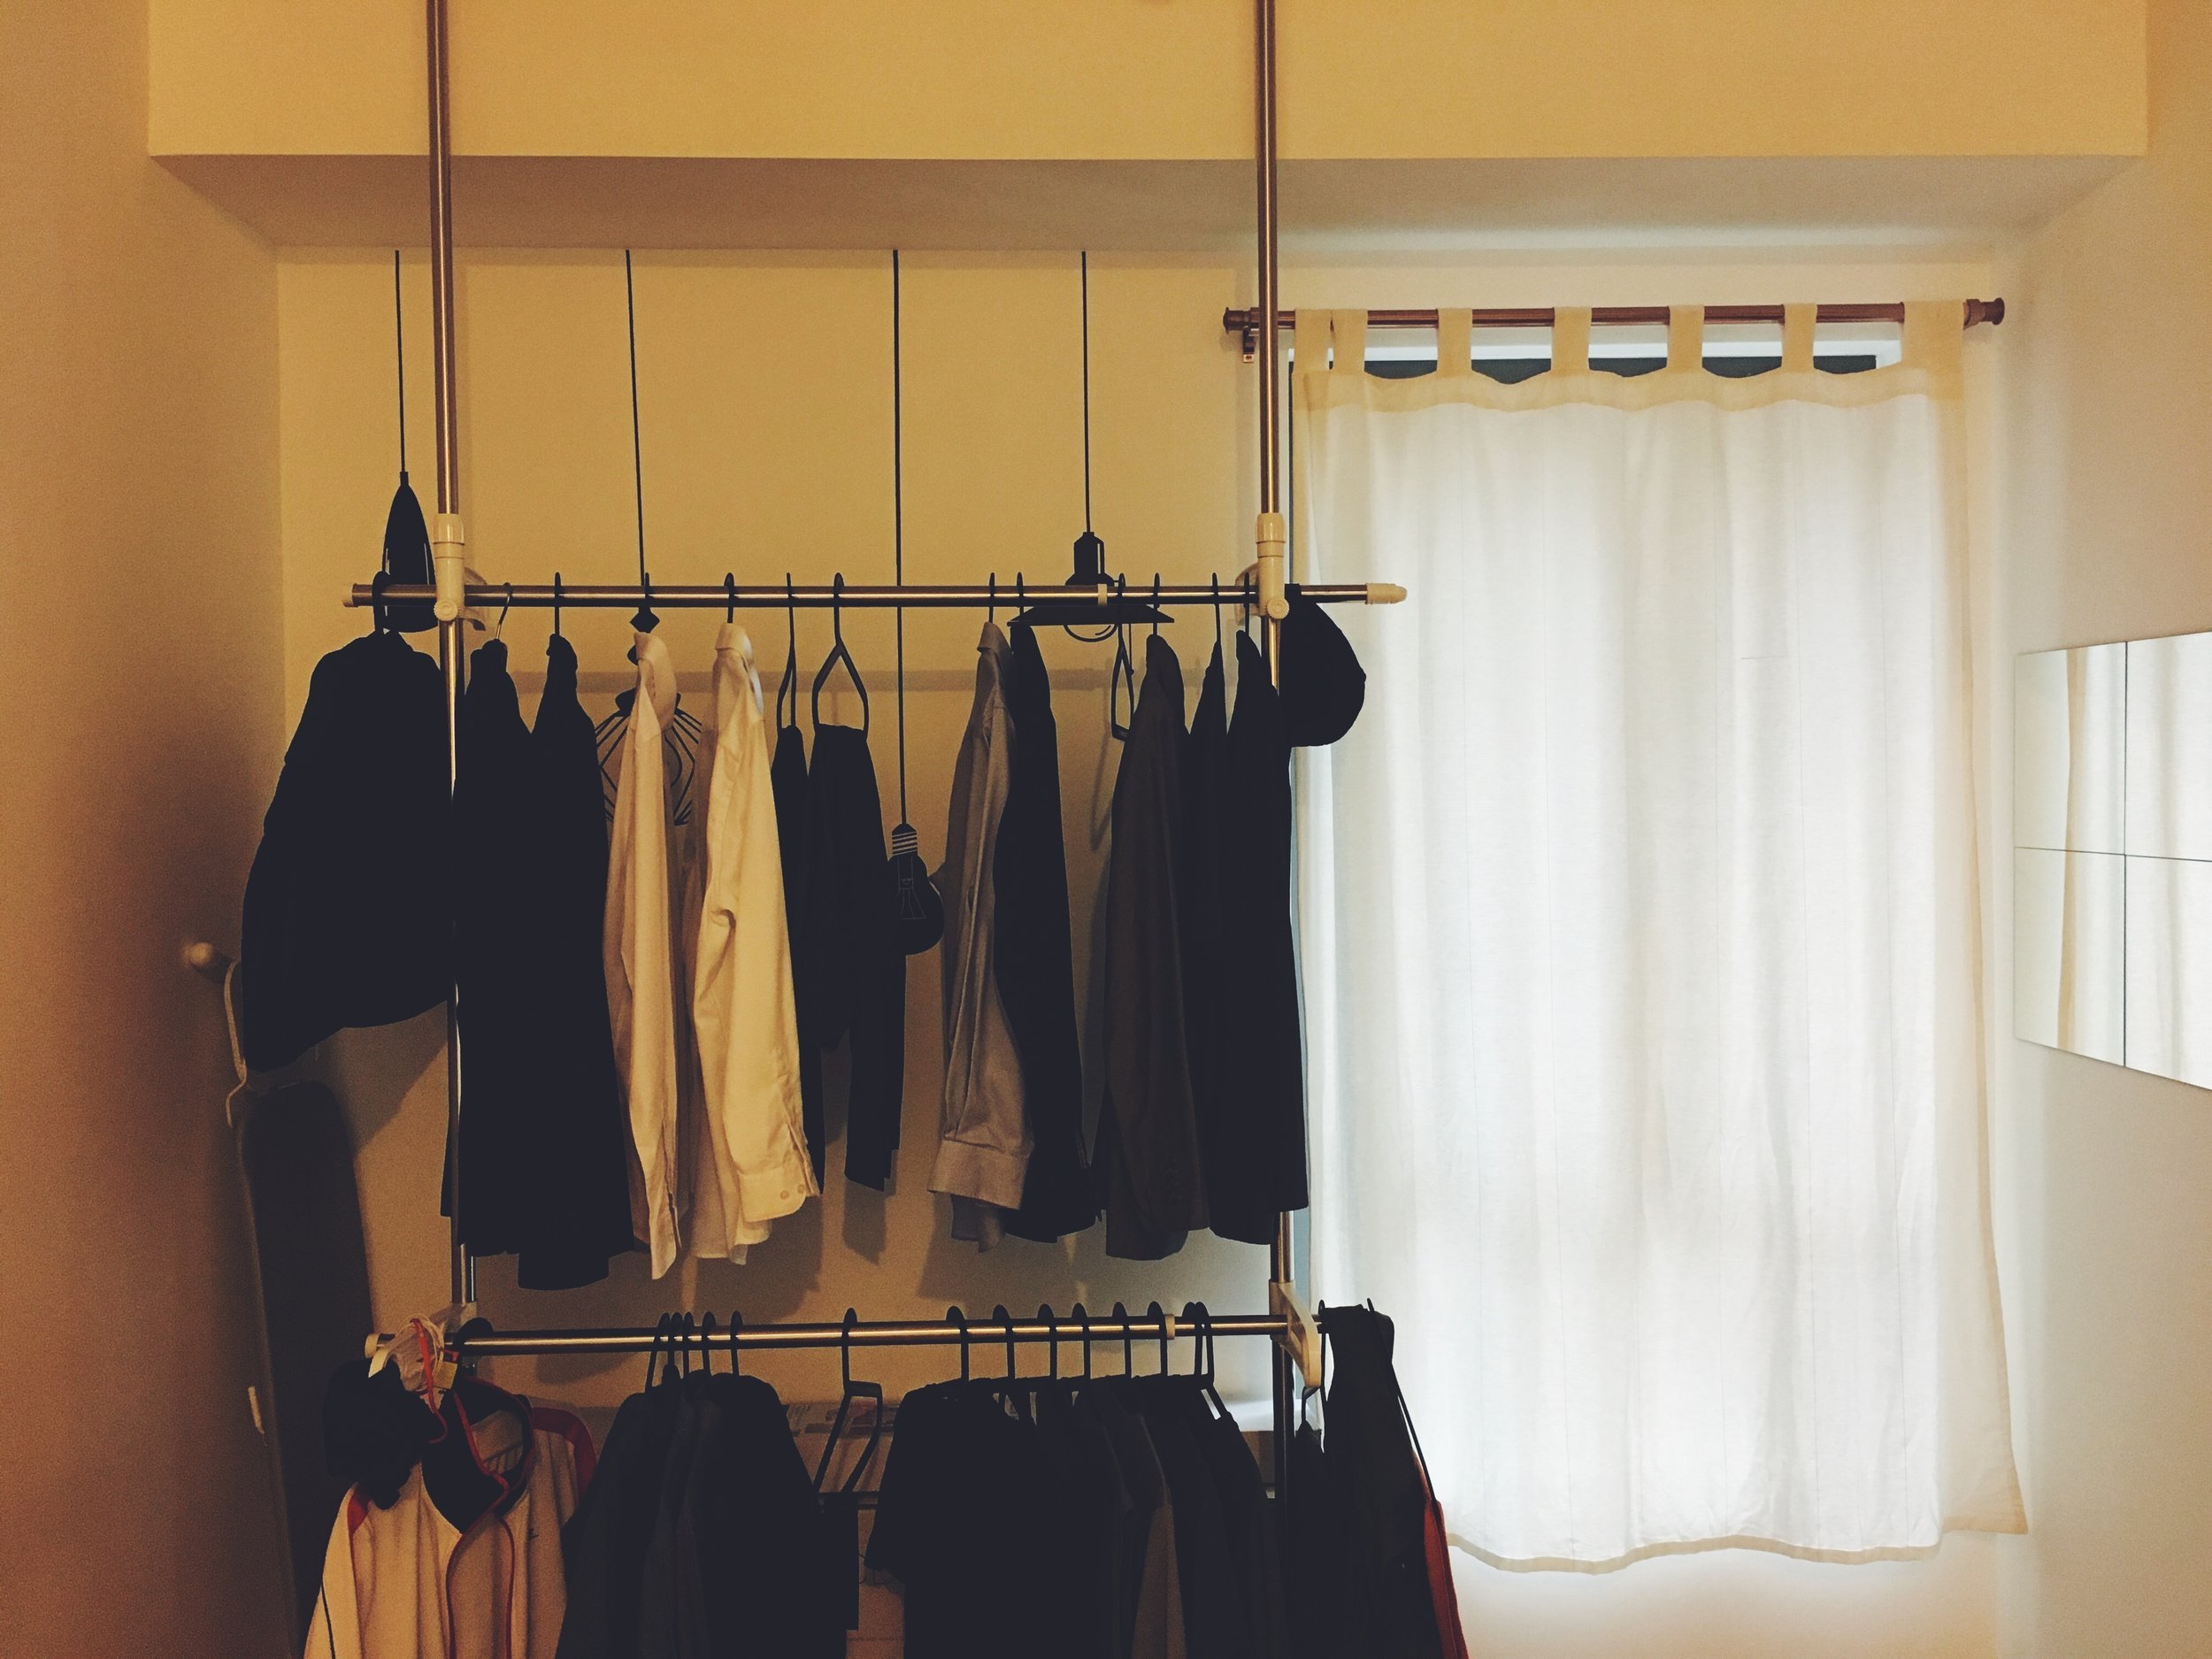 Would you like me to pick out an outfit from one of our indie designers for you?